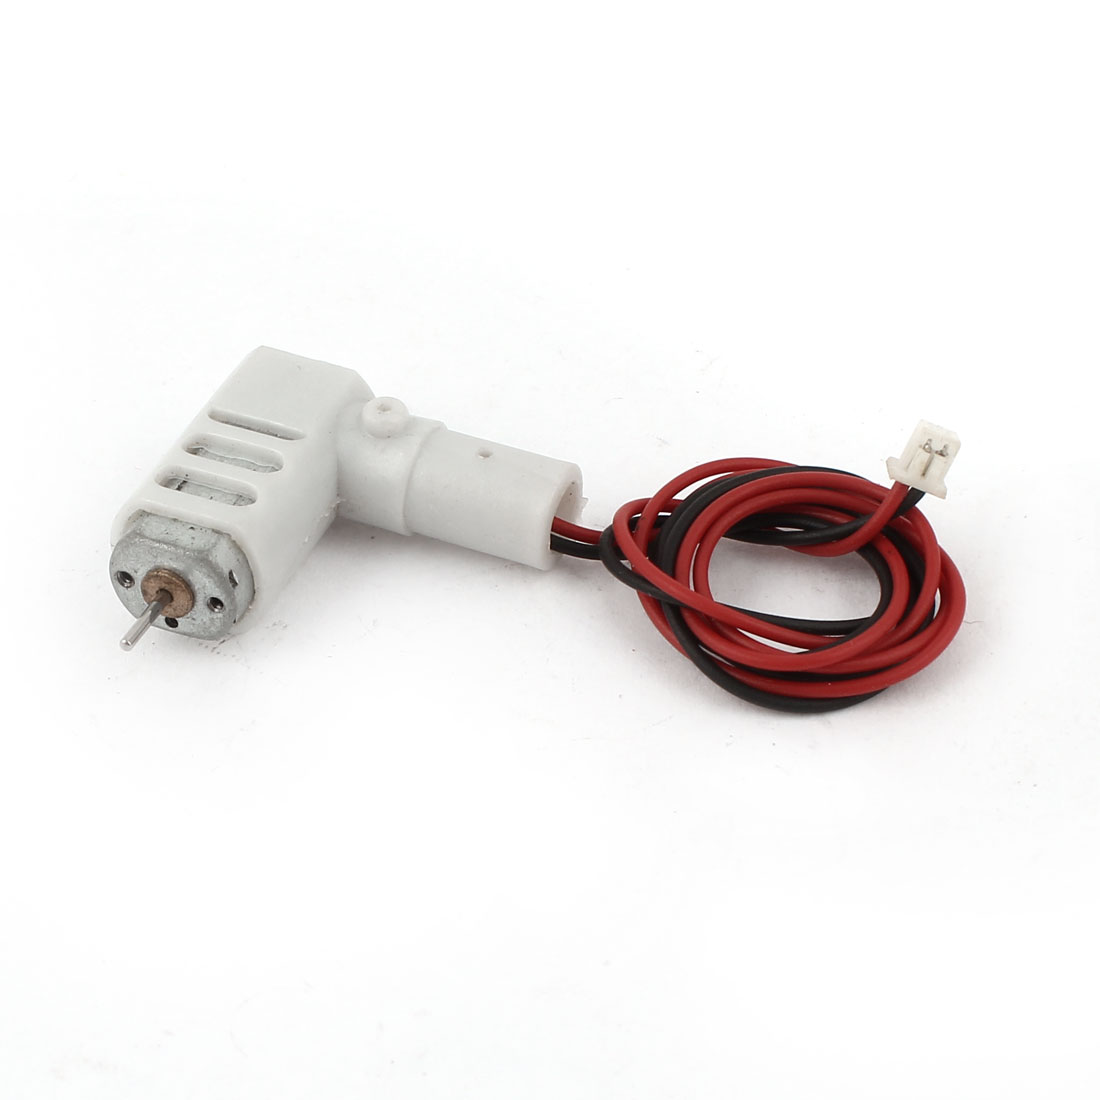 28000RPM Speed DC 7.4V Tail Motor for RC Model SY 8088 34/35 Aircraft Airplane